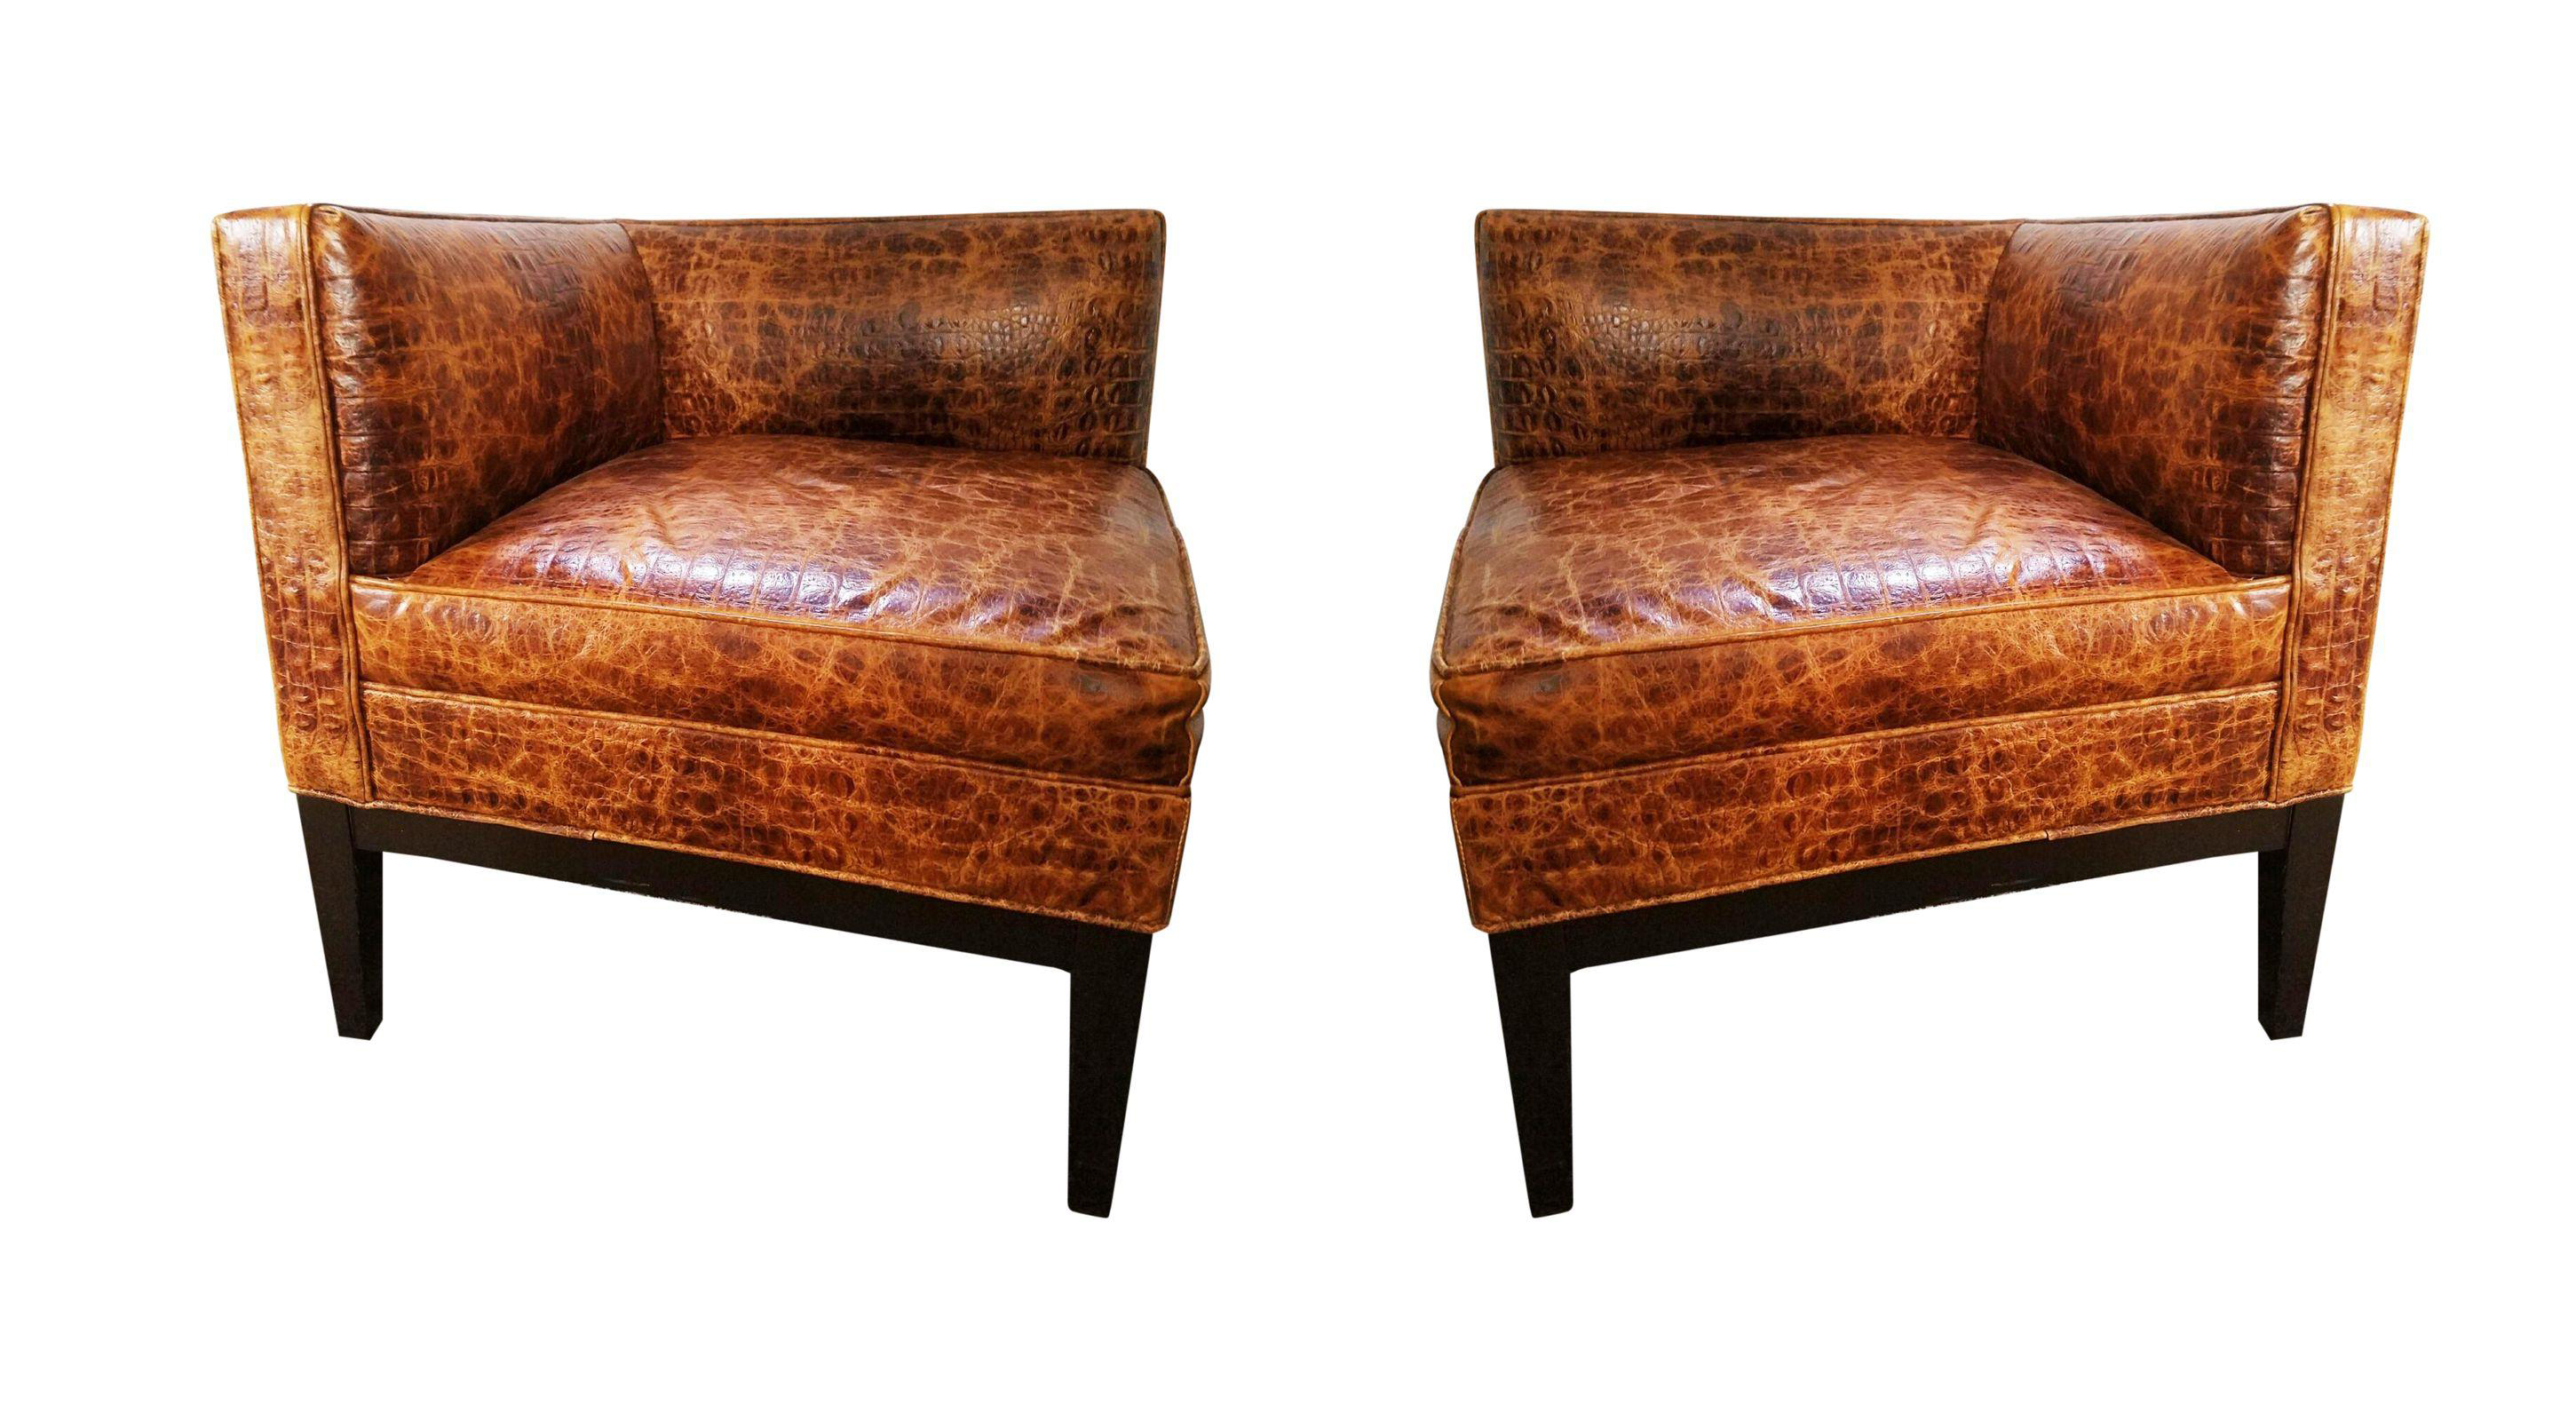 Arhaus Croc Embossed Leather Corner Chairs Pair